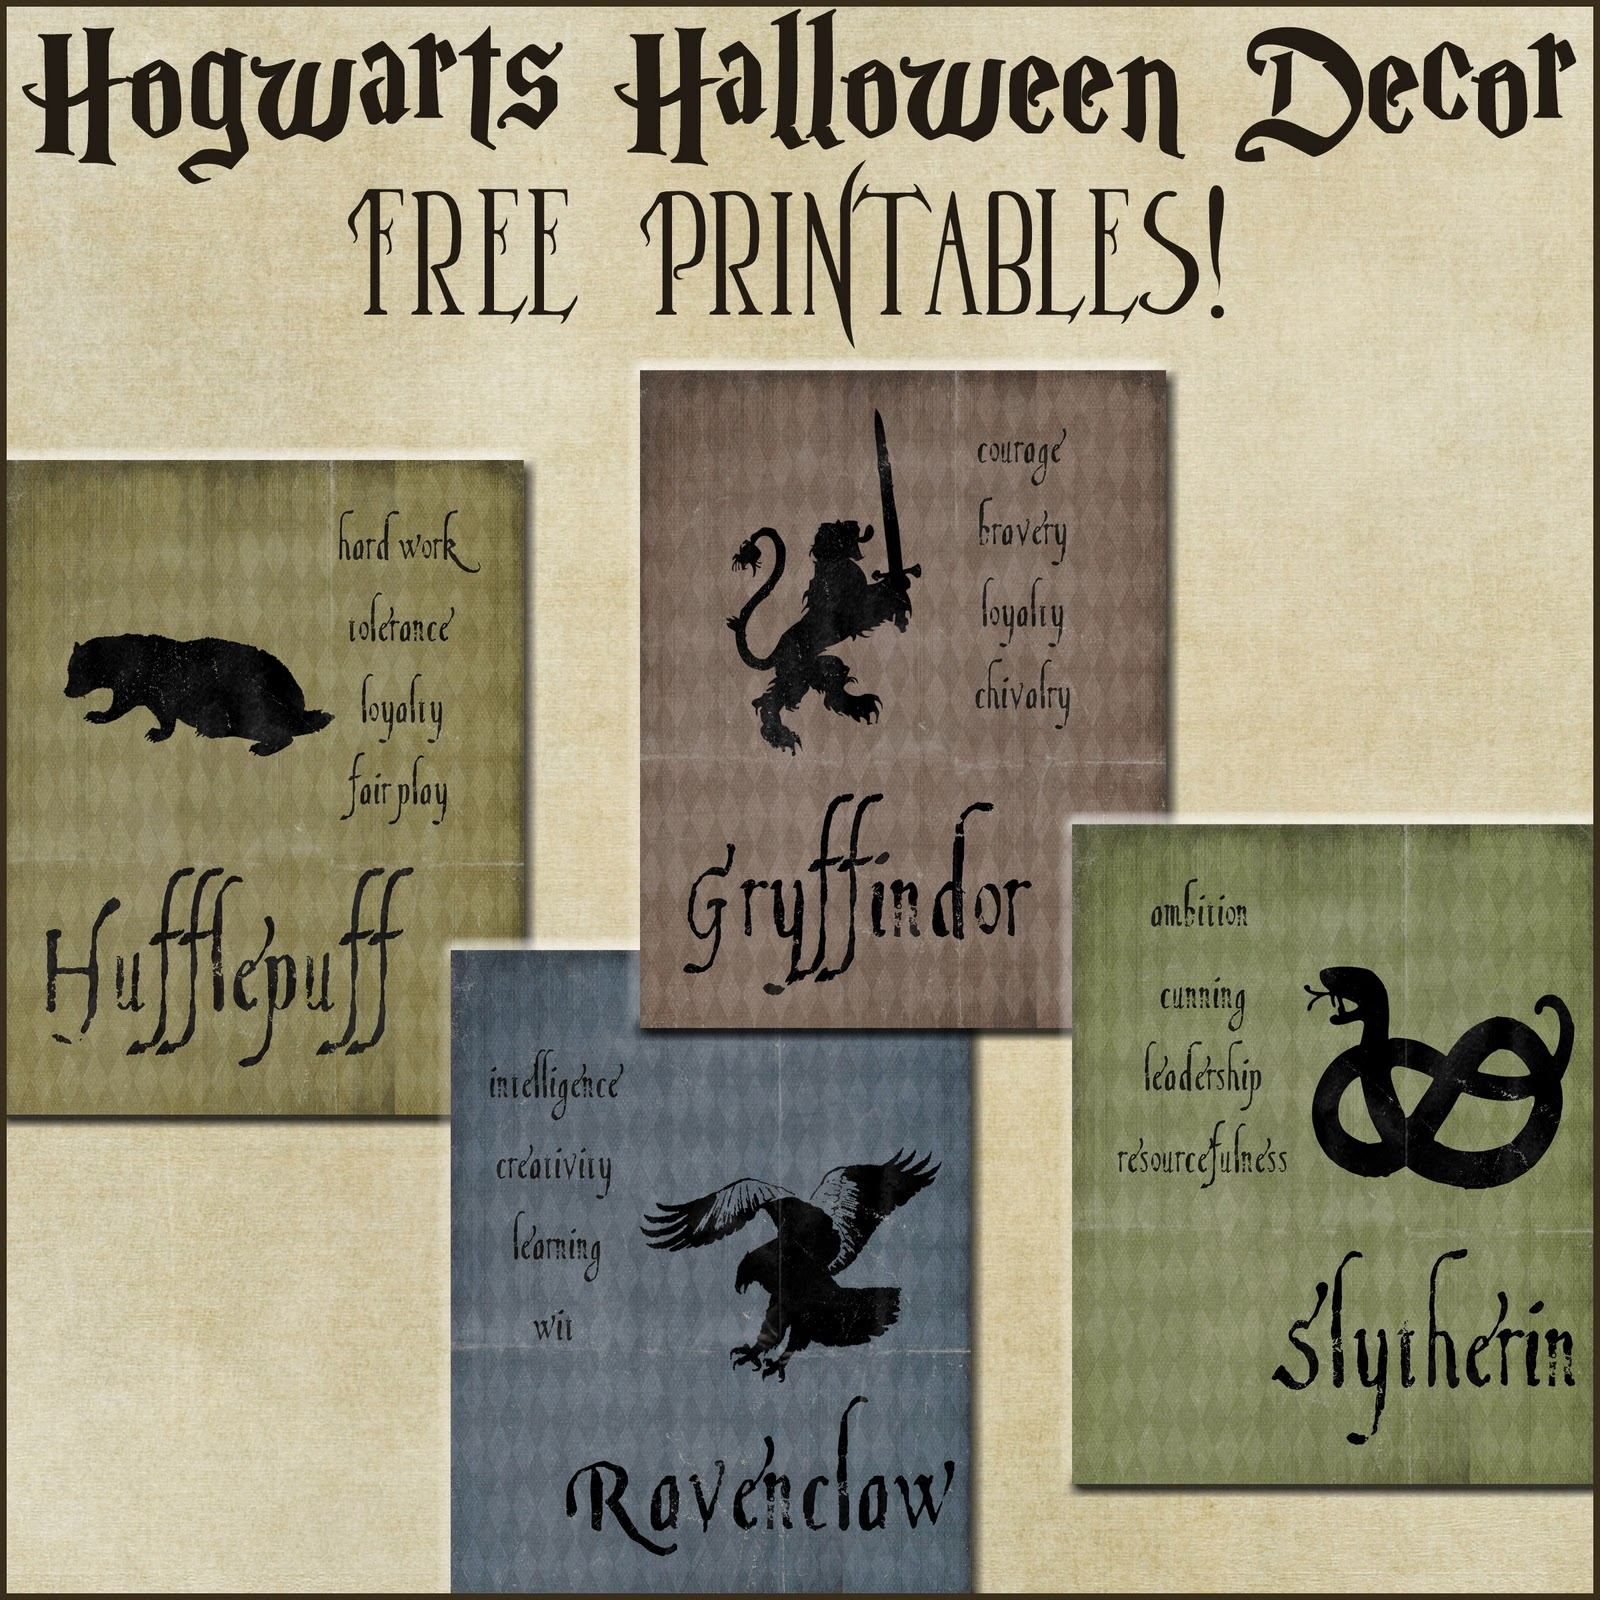 Priceless image intended for harry potter decorations printable